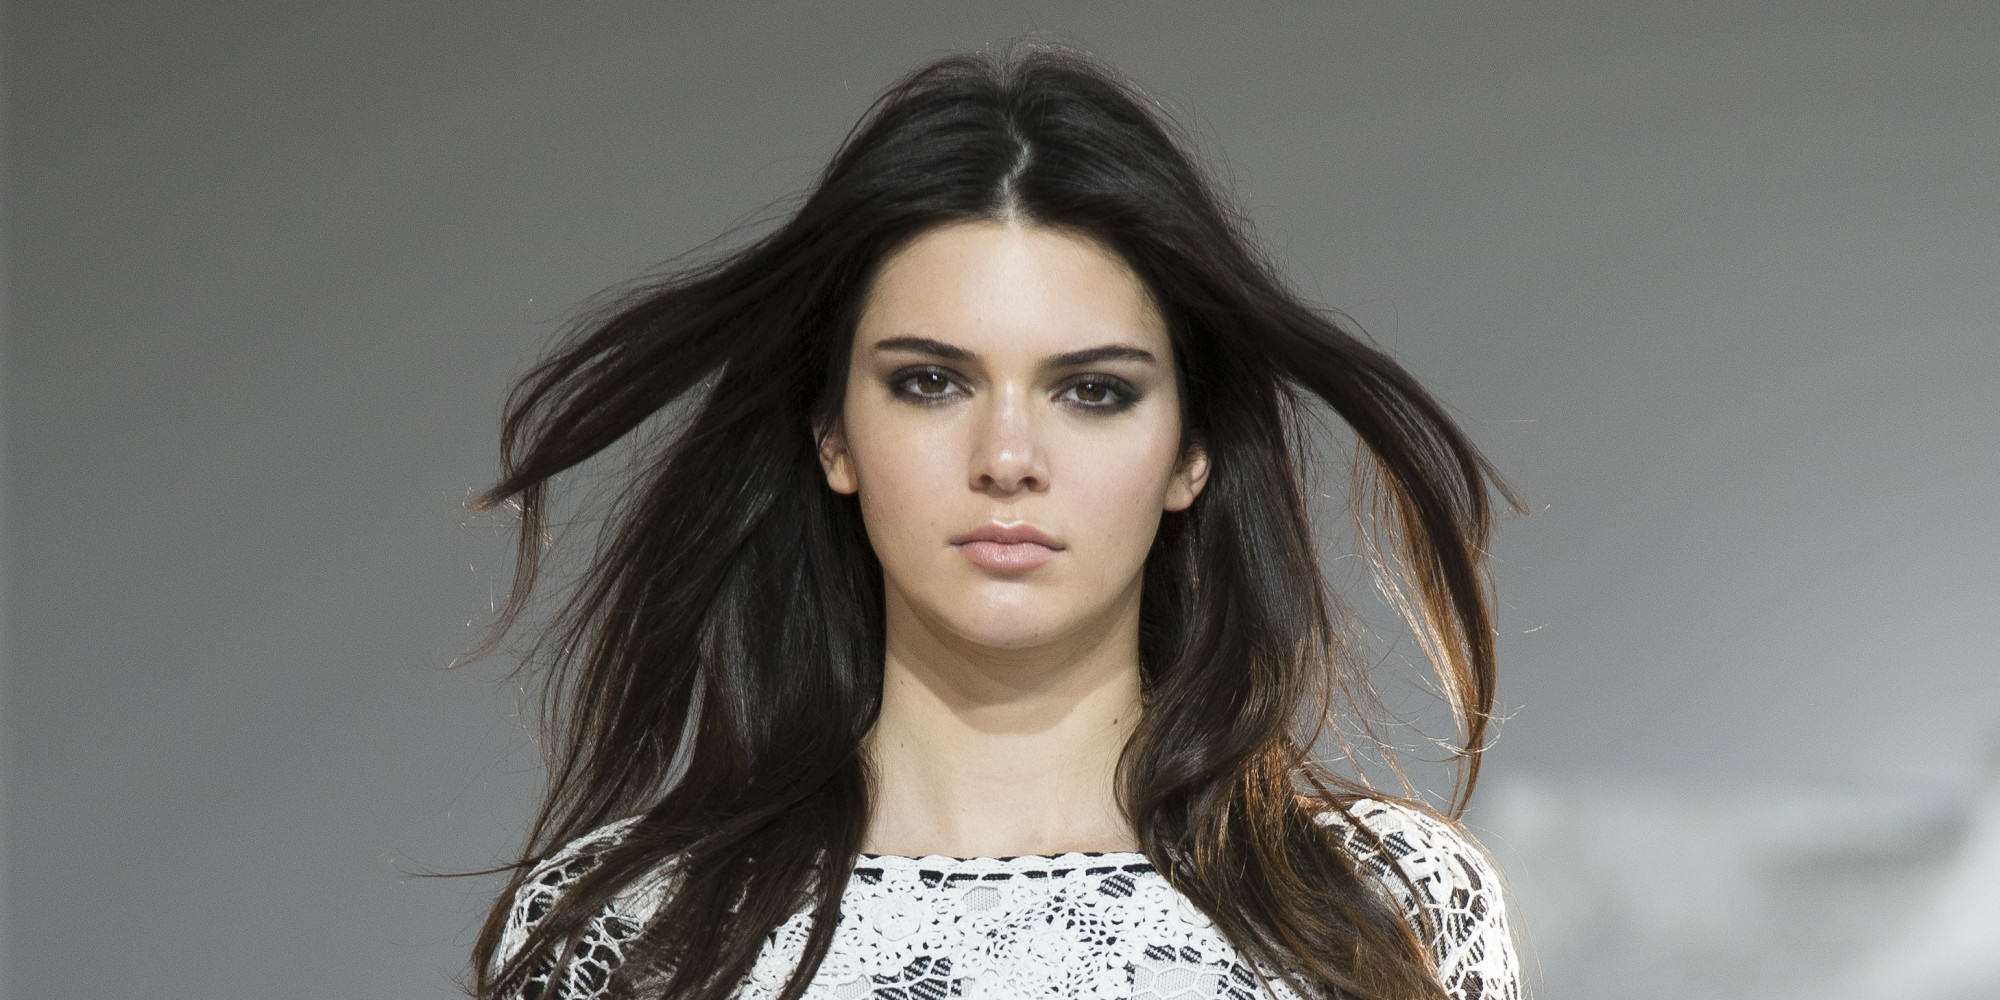 Associated Press1 Kendall Jenner Nude Hits 1 Million Instagram Likes, But Theres A Catch